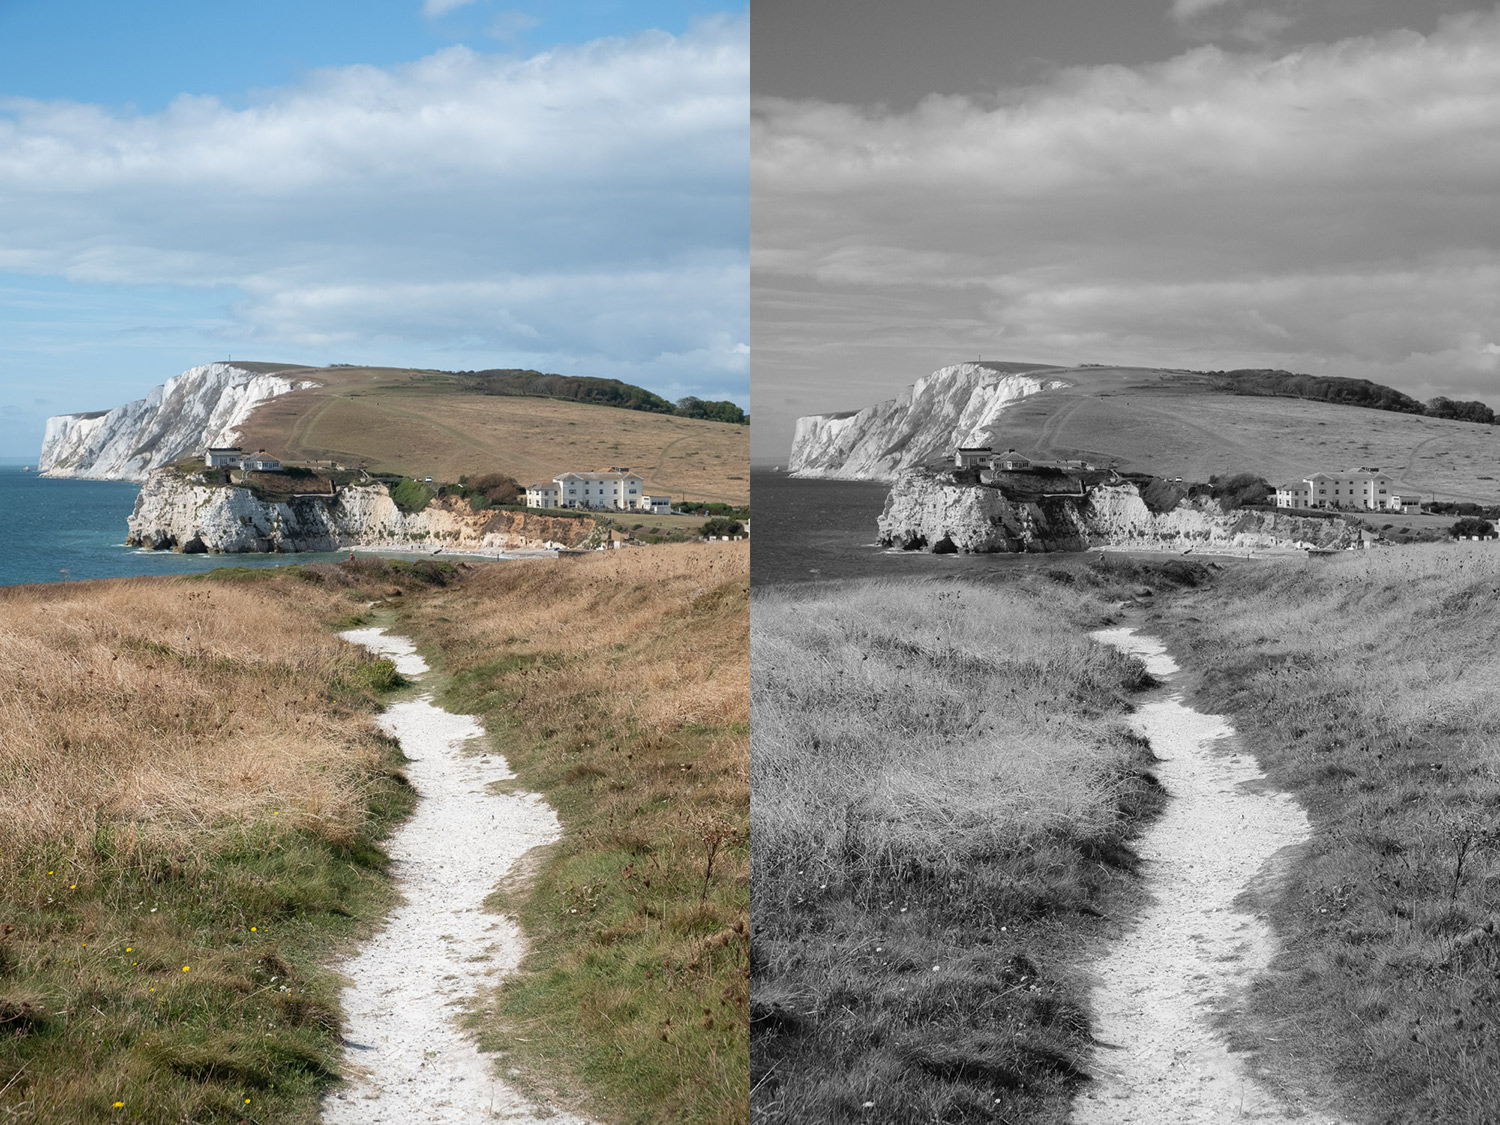 Image: Left: Isle of Wight RAW file. Right: Acros JPG with the red filter. Red filters have long bee...